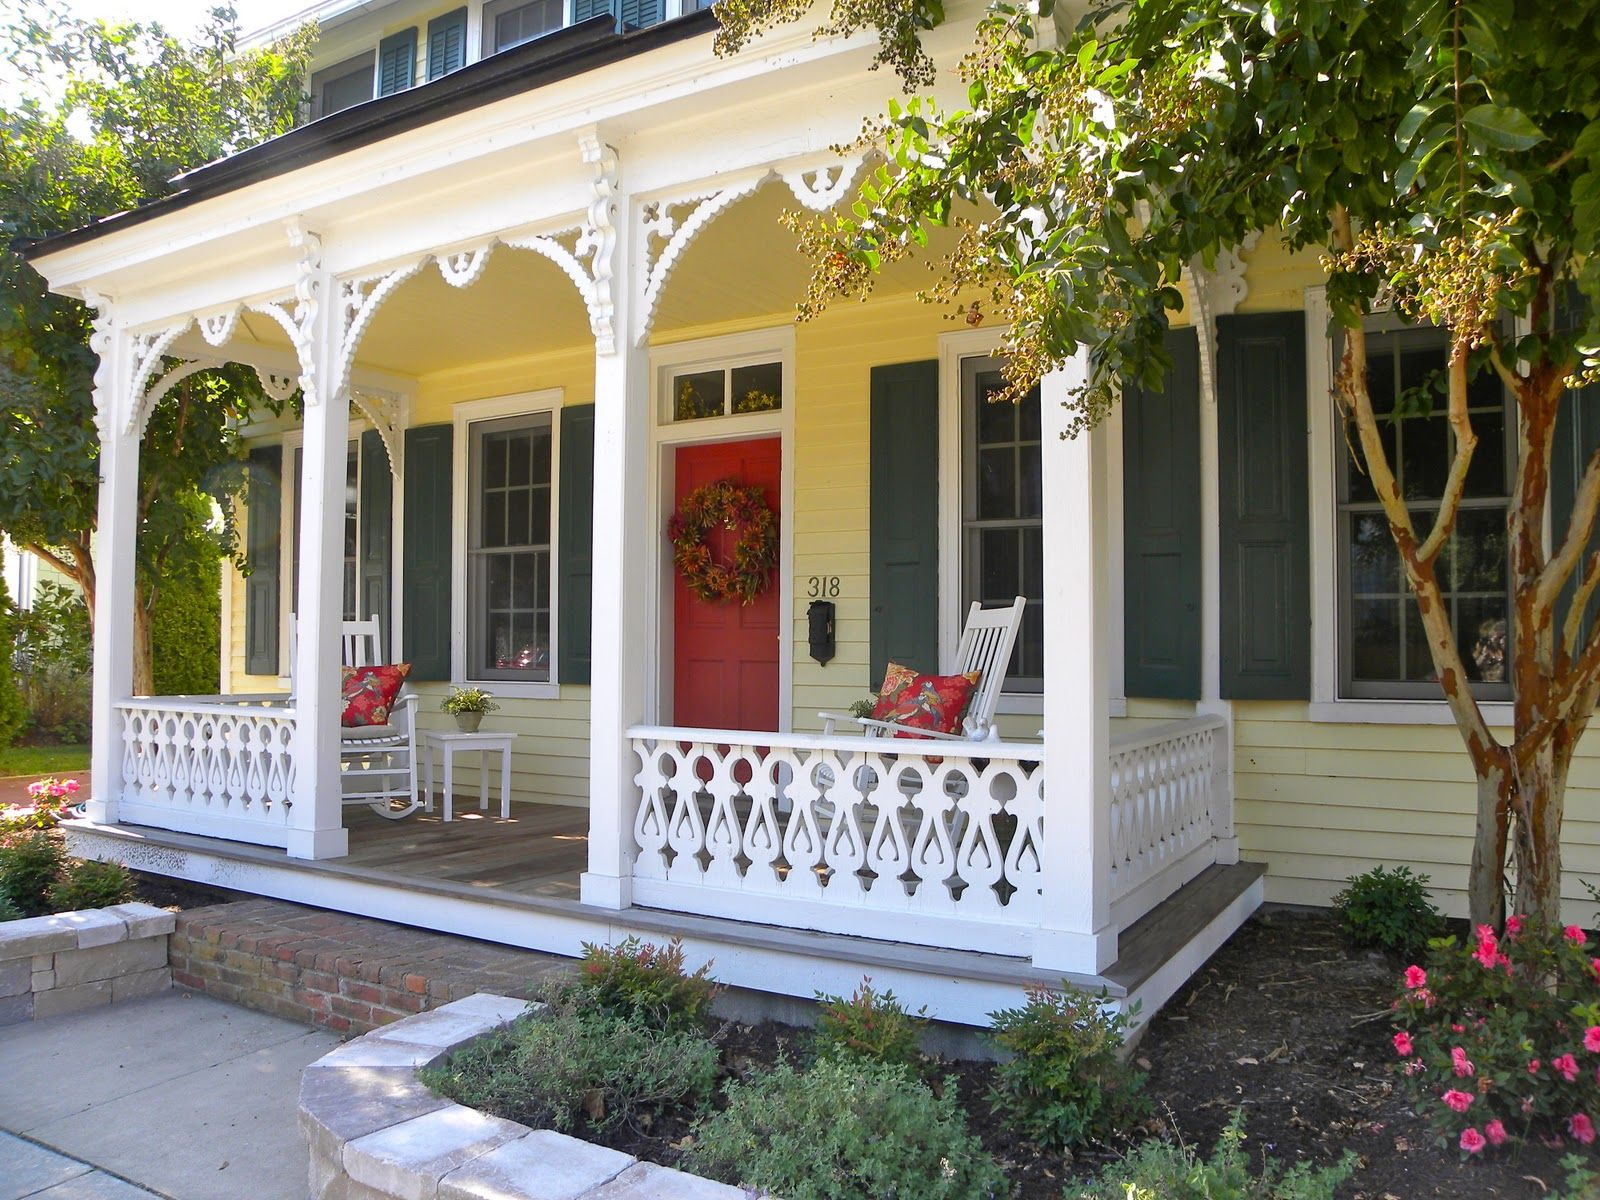 Pin By Sheila Holland On Stuff At Home Red Door House Green Shutters White Exterior Houses